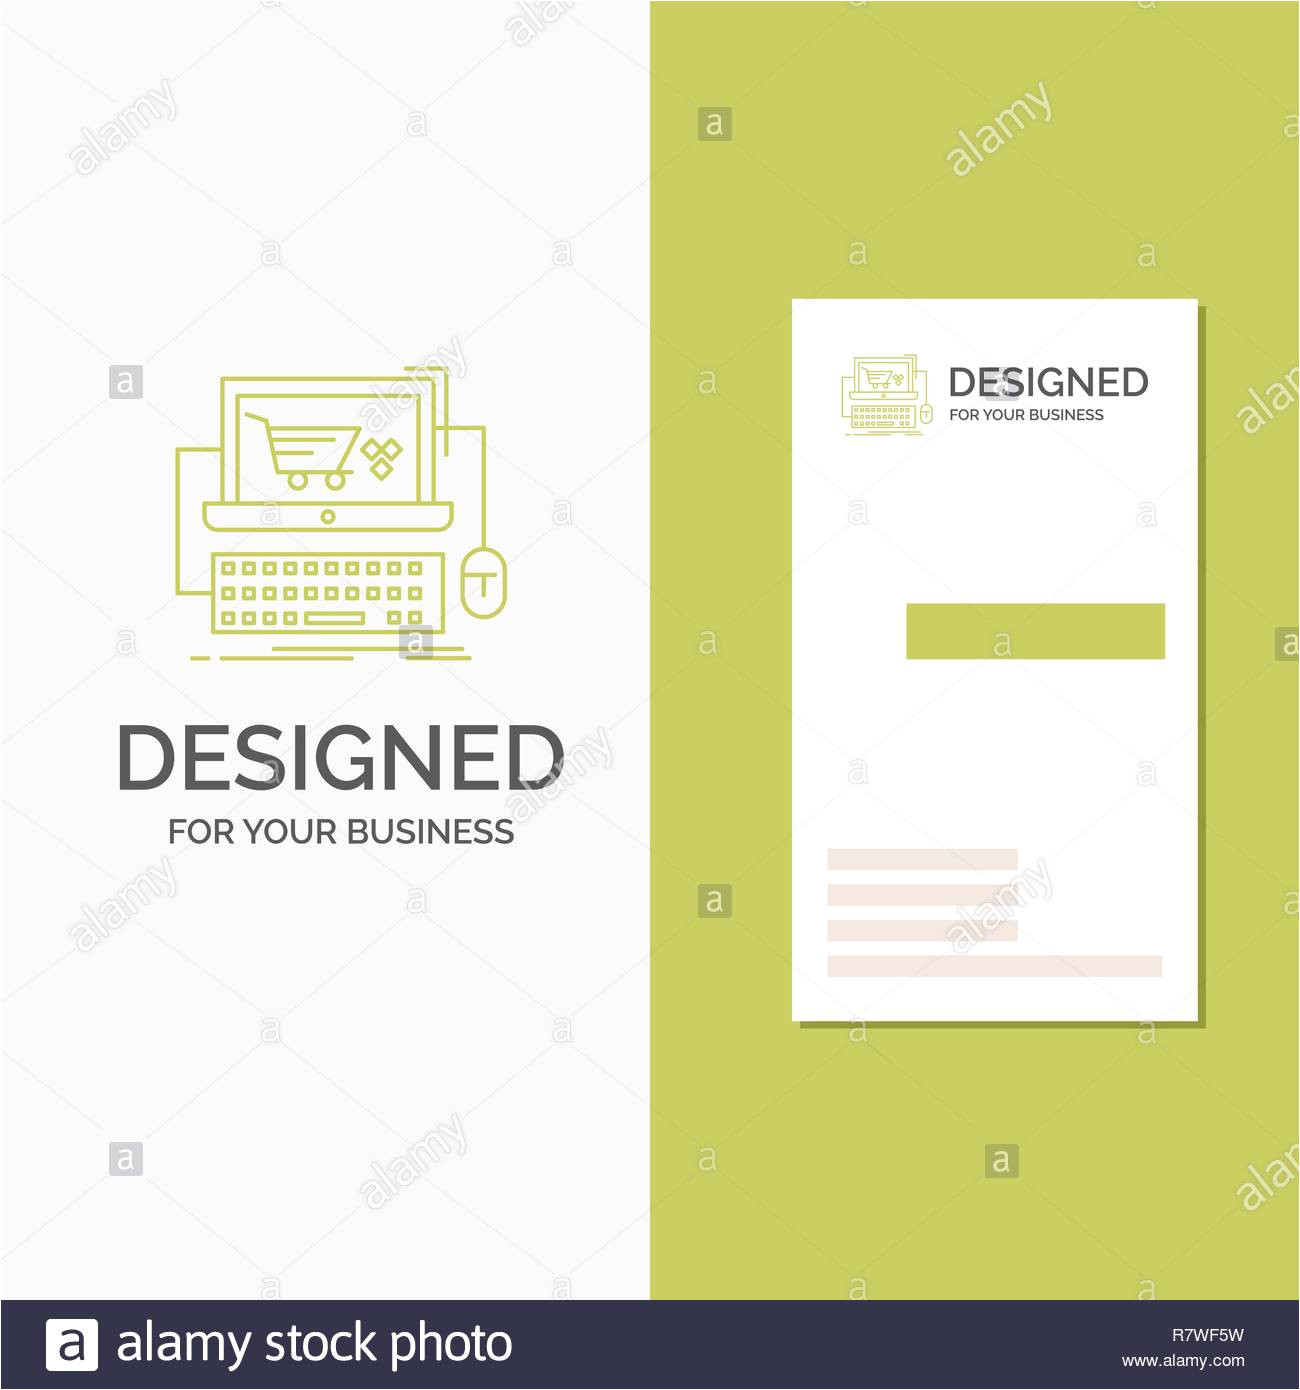 business logo for cart online shop store game vertical green business visiting card template creative background vector illustration r7wf5w jpg